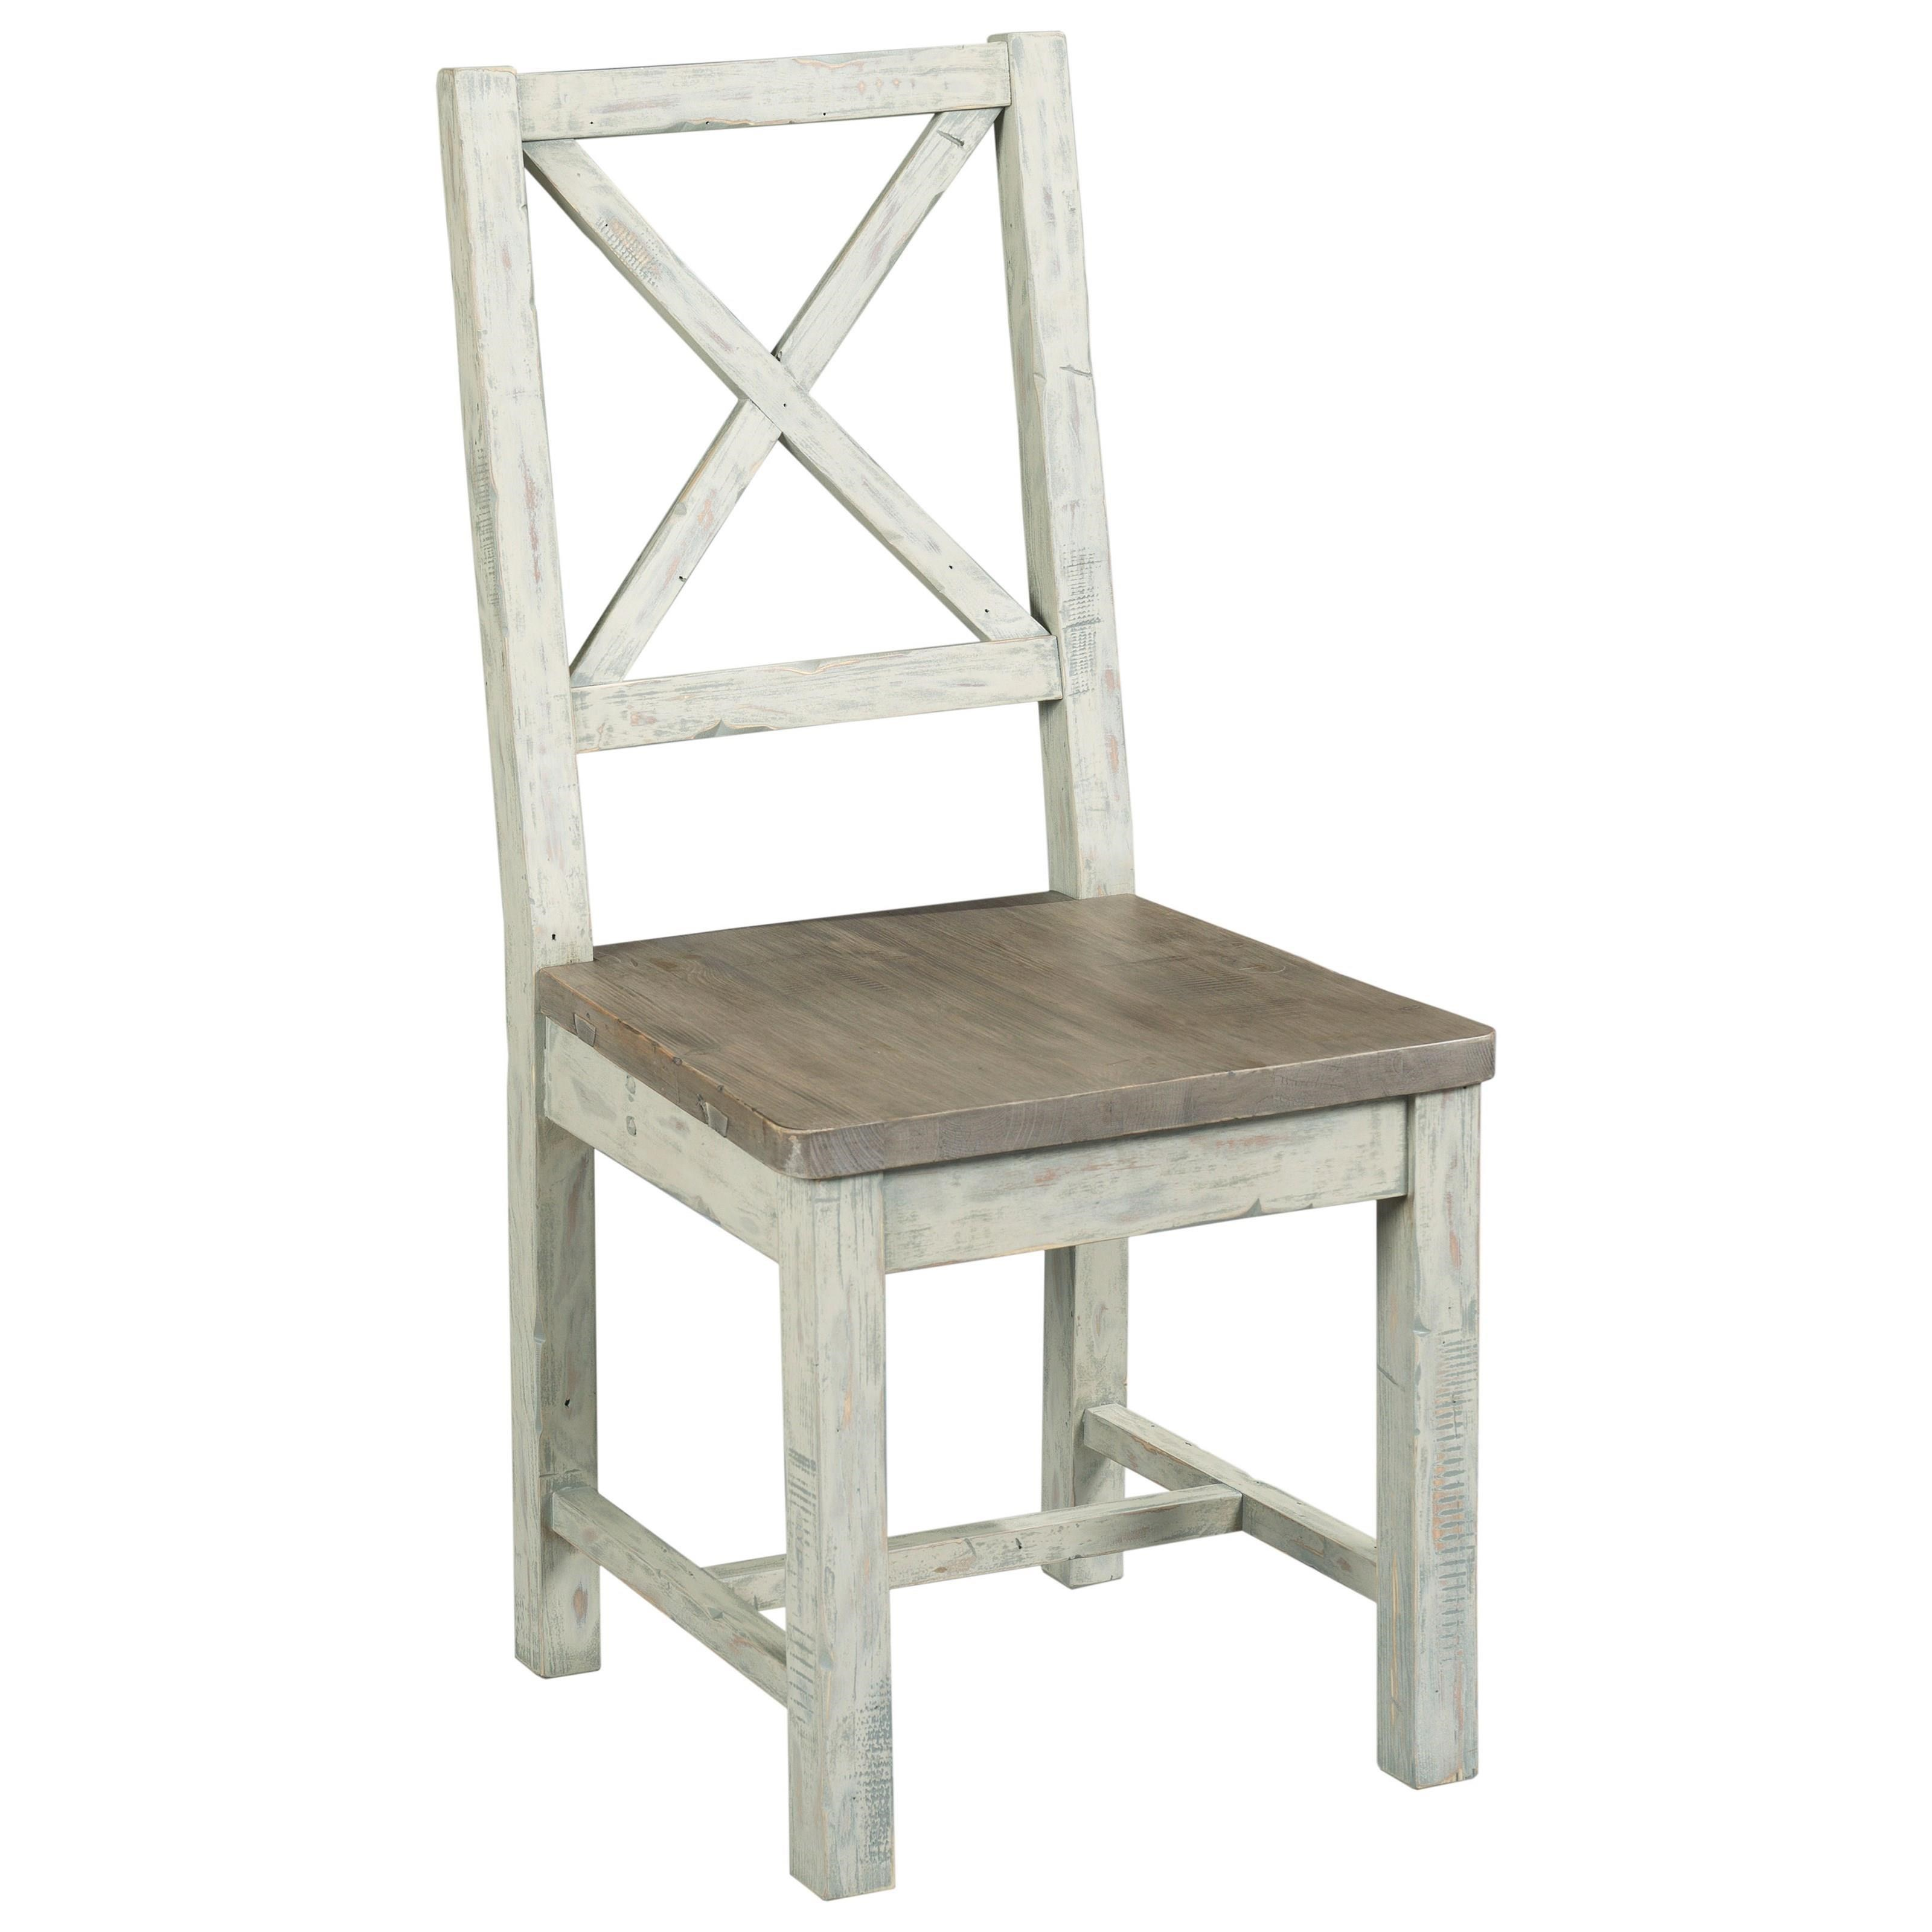 Hammary Reclamation Place Farmhouse Style Desk Chair With X Back Howell Furniture Office Side Chairs